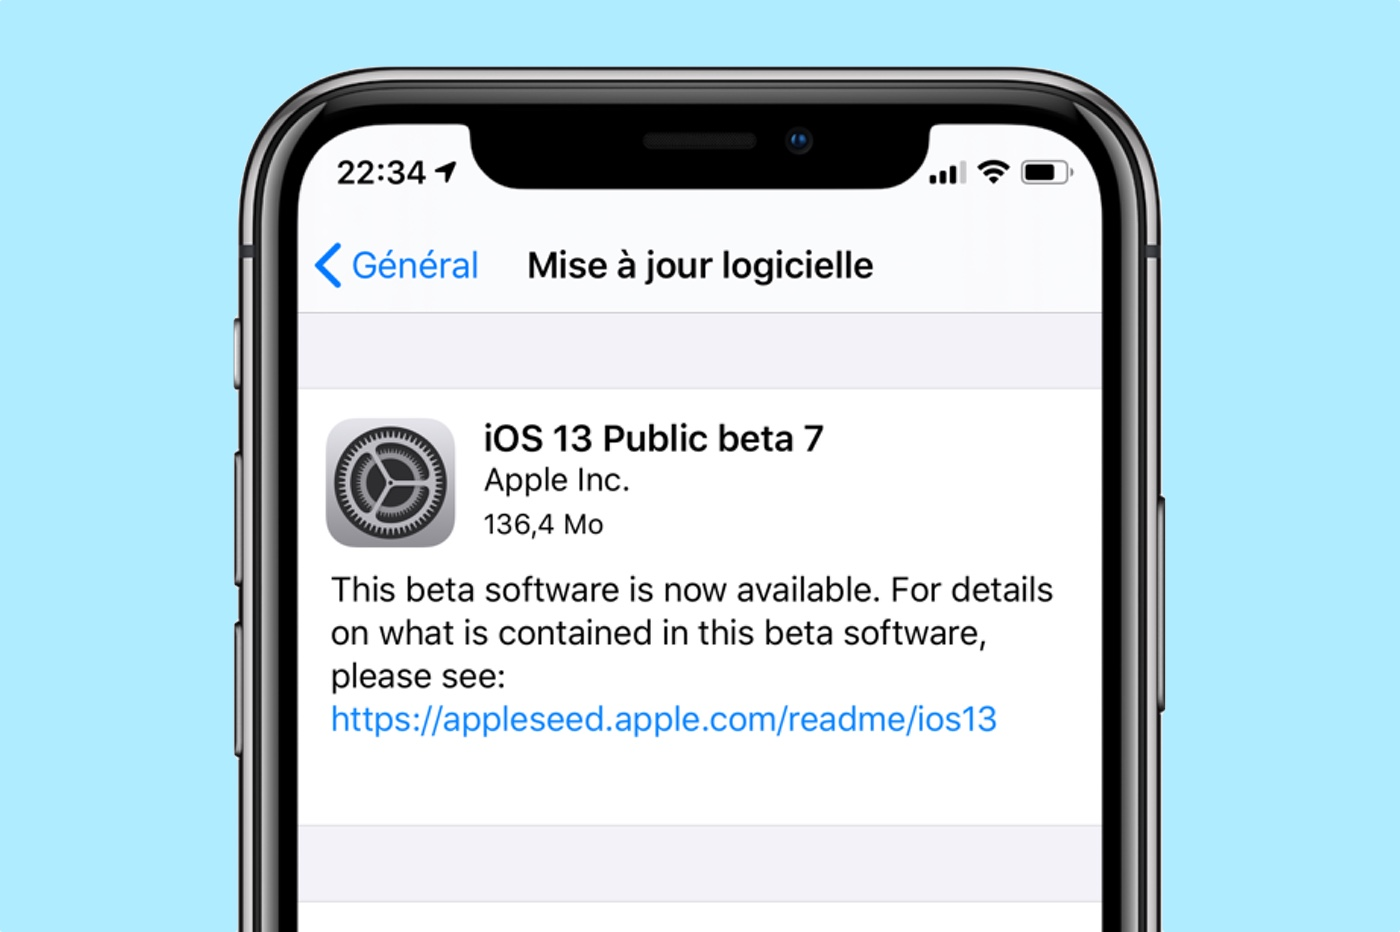 iOS 13 beta 7 publique